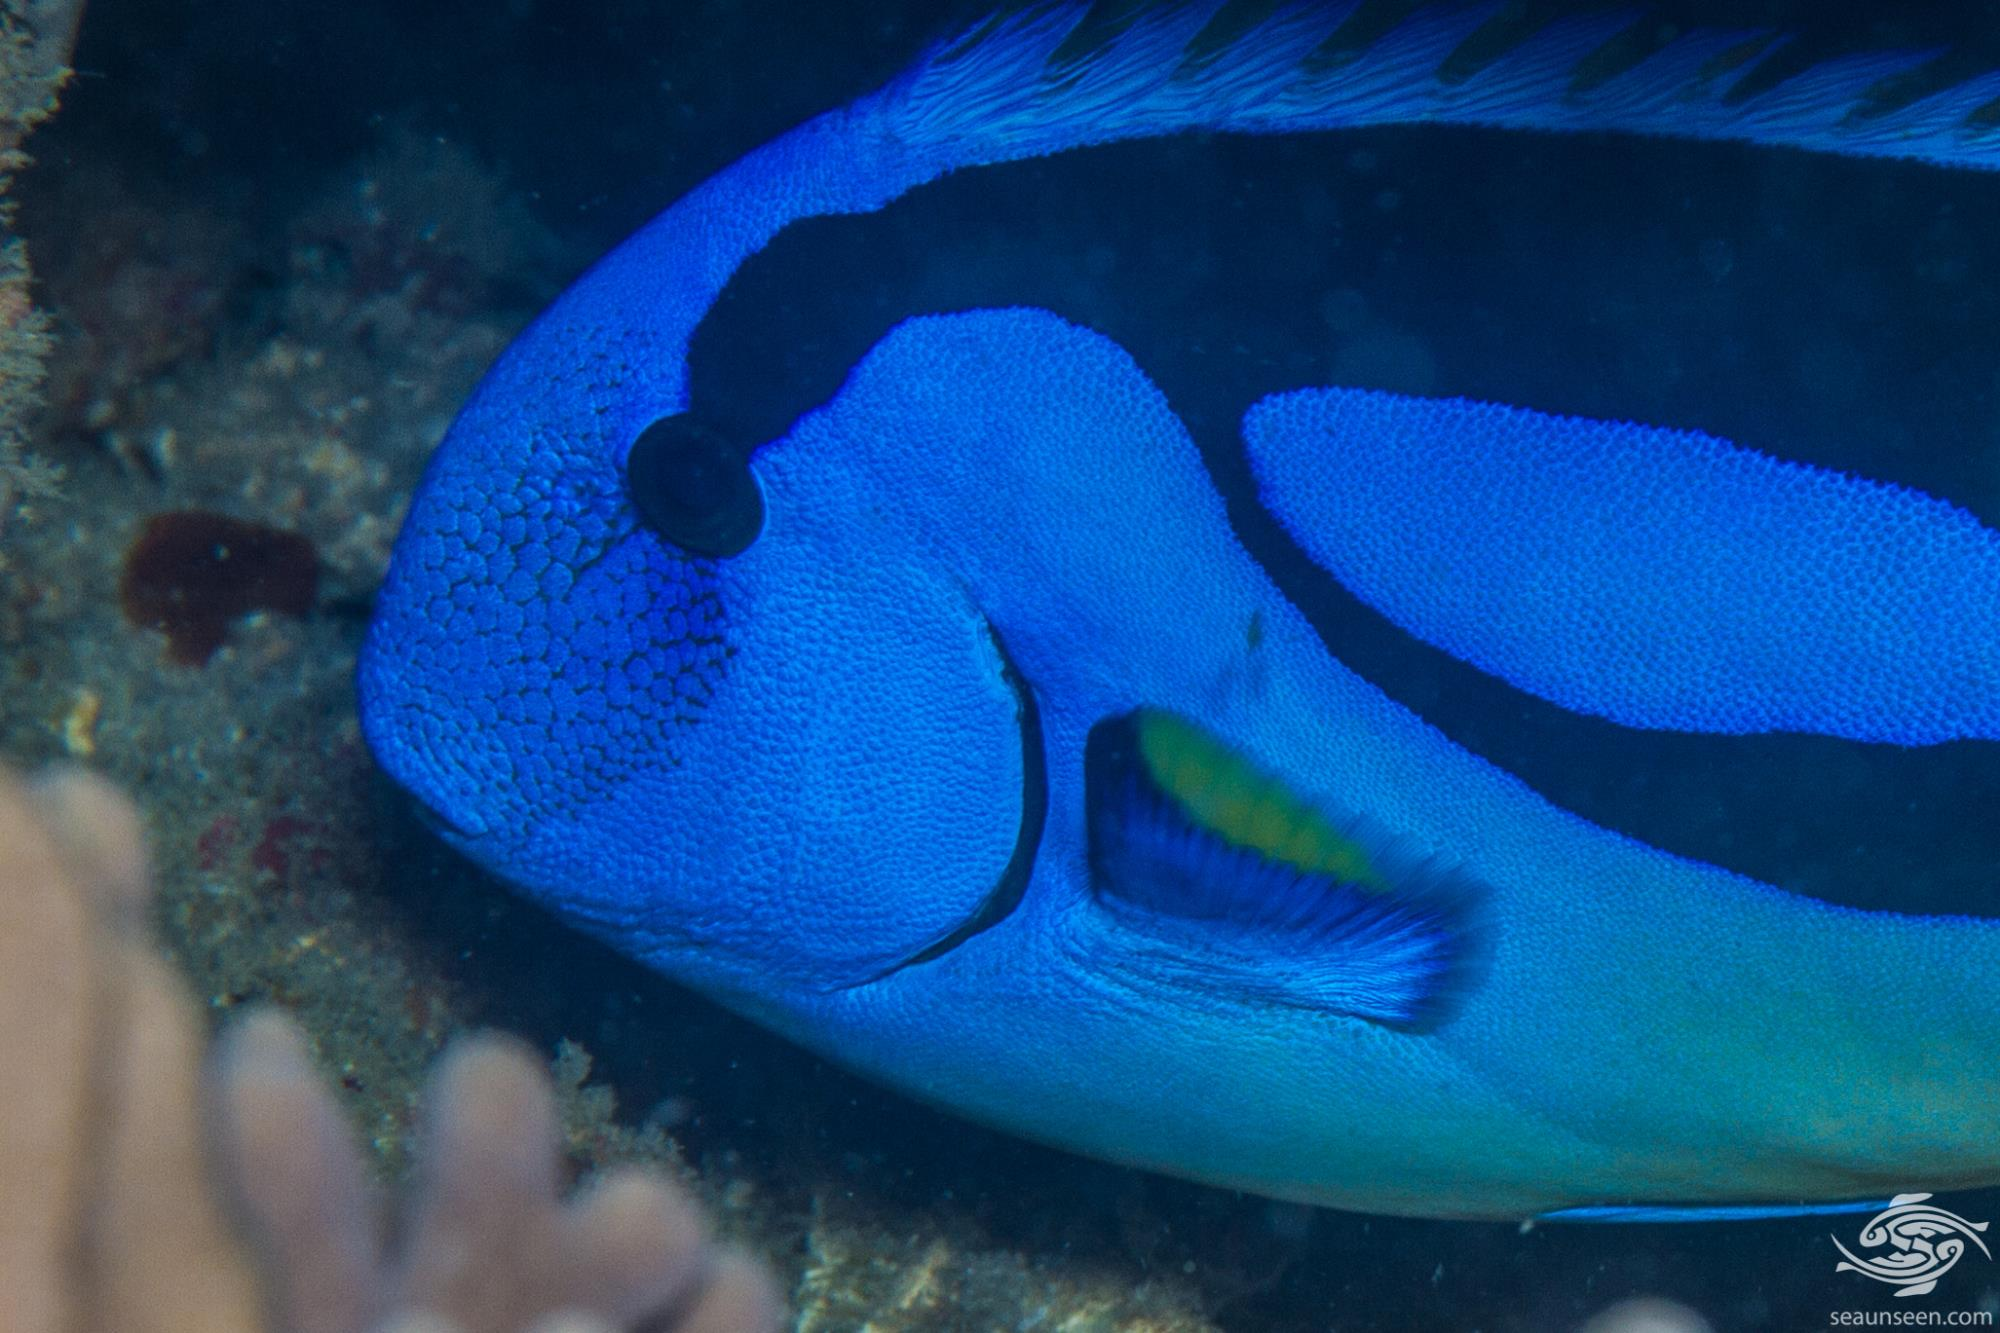 Regal Blue Tang (Paracanthurus hepatus) also known as the Blue Tang, the Palette Surgeonfish, the Hepatus Tang and of course more famously as Dory